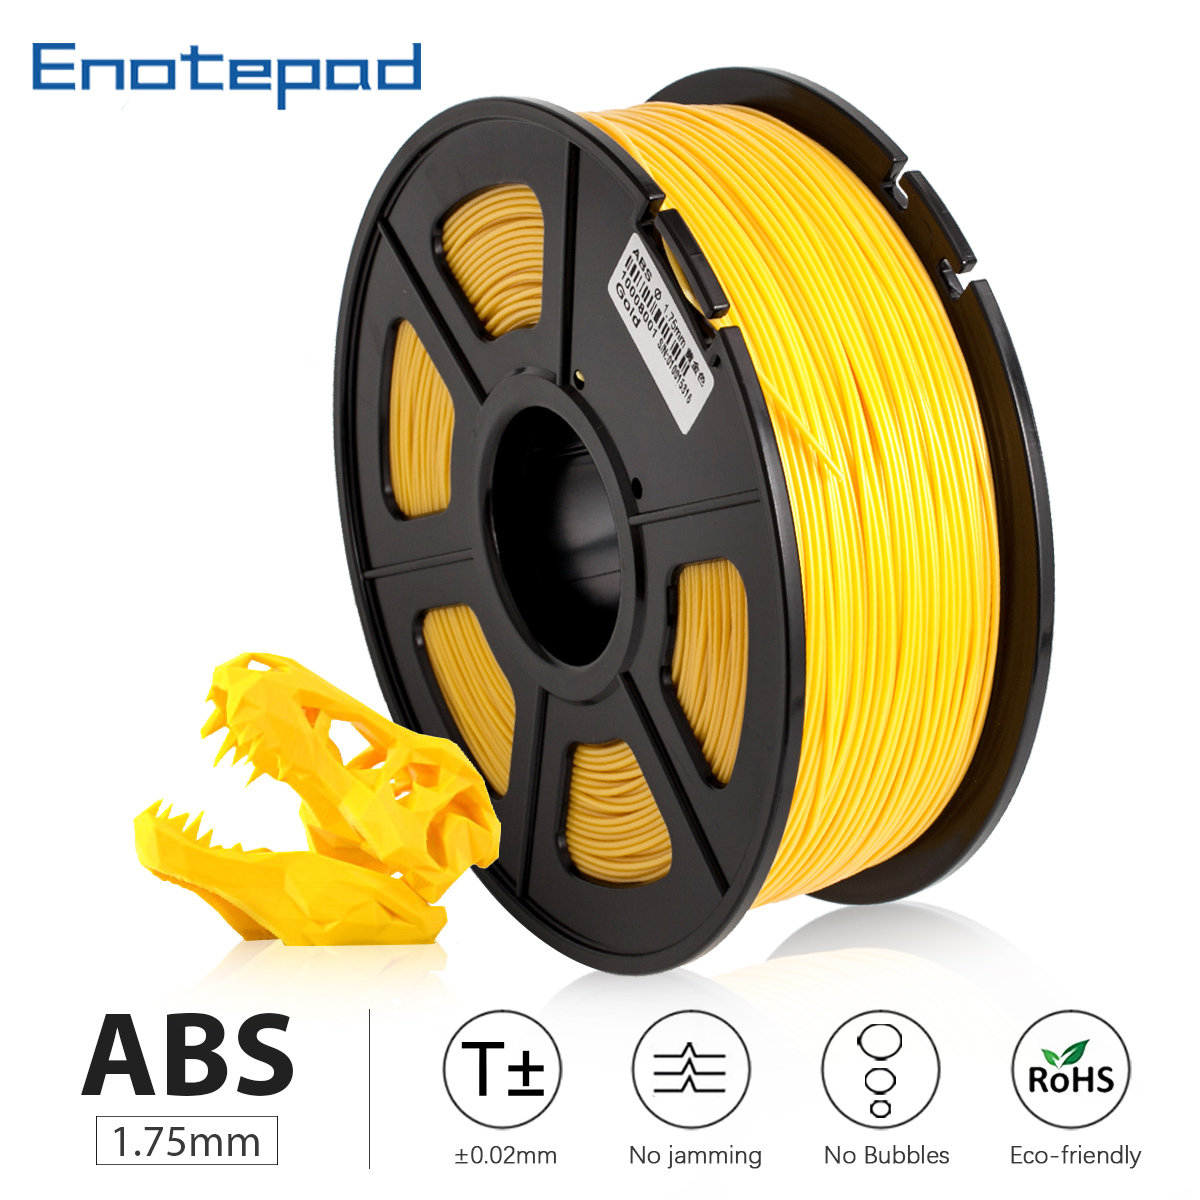 GOLD <font><b>ABS</b></font> <font><b>3D</b></font> Printer resin Filament <font><b>3D</b></font> Printing Filament <font><b>1.75</b></font> mmfor <font><b>3D</b></font> Printers Accuracy +/- 0.02 mm sublimation sublimatie image